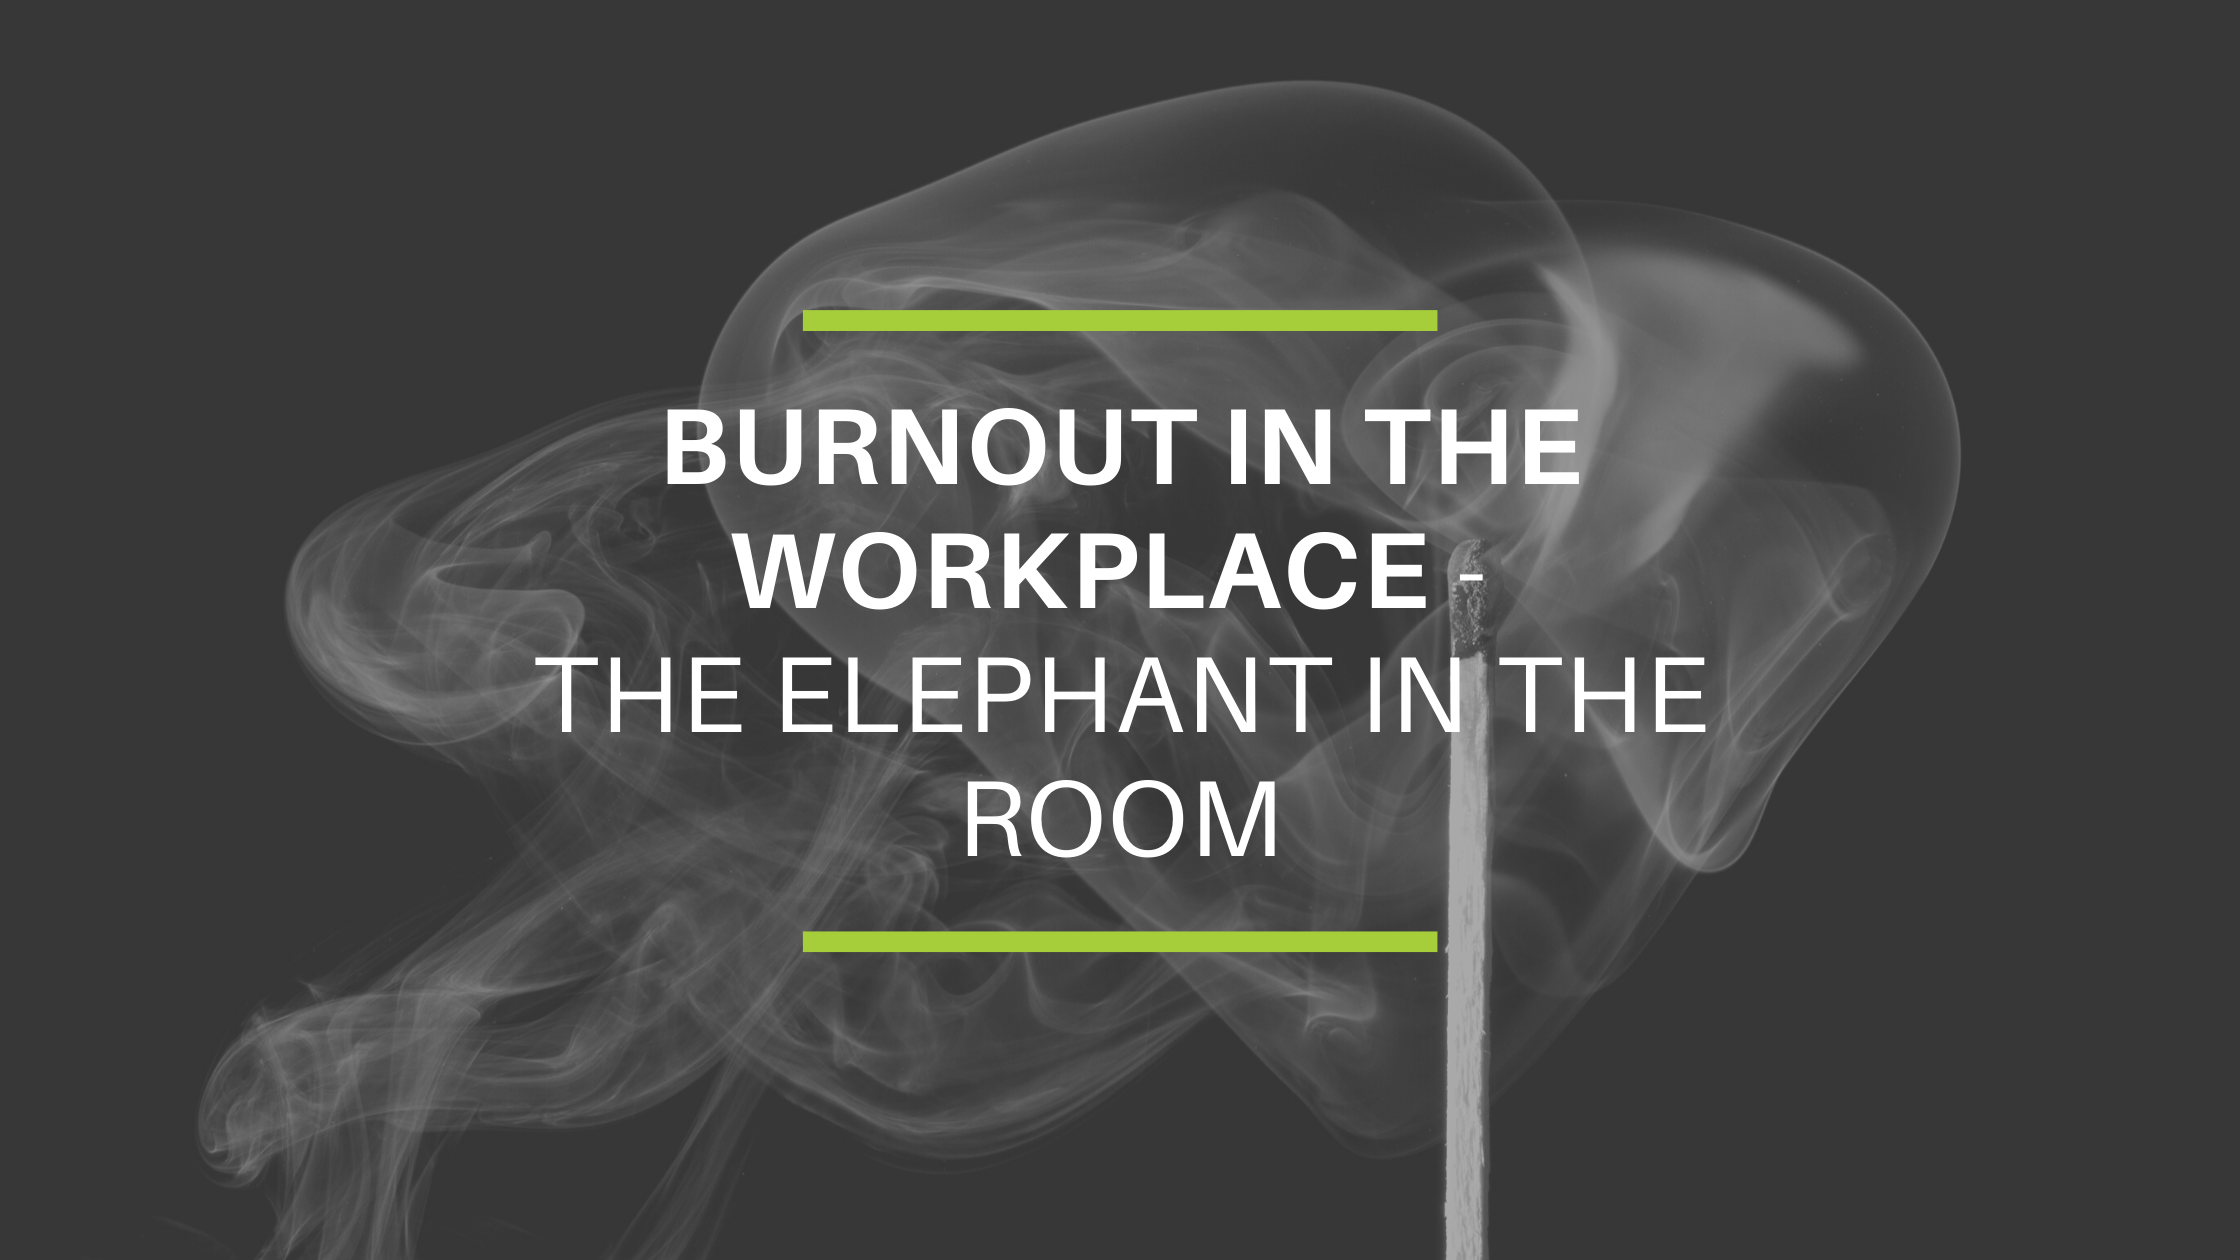 Burnout in the Workplace - The Elephant in the Room